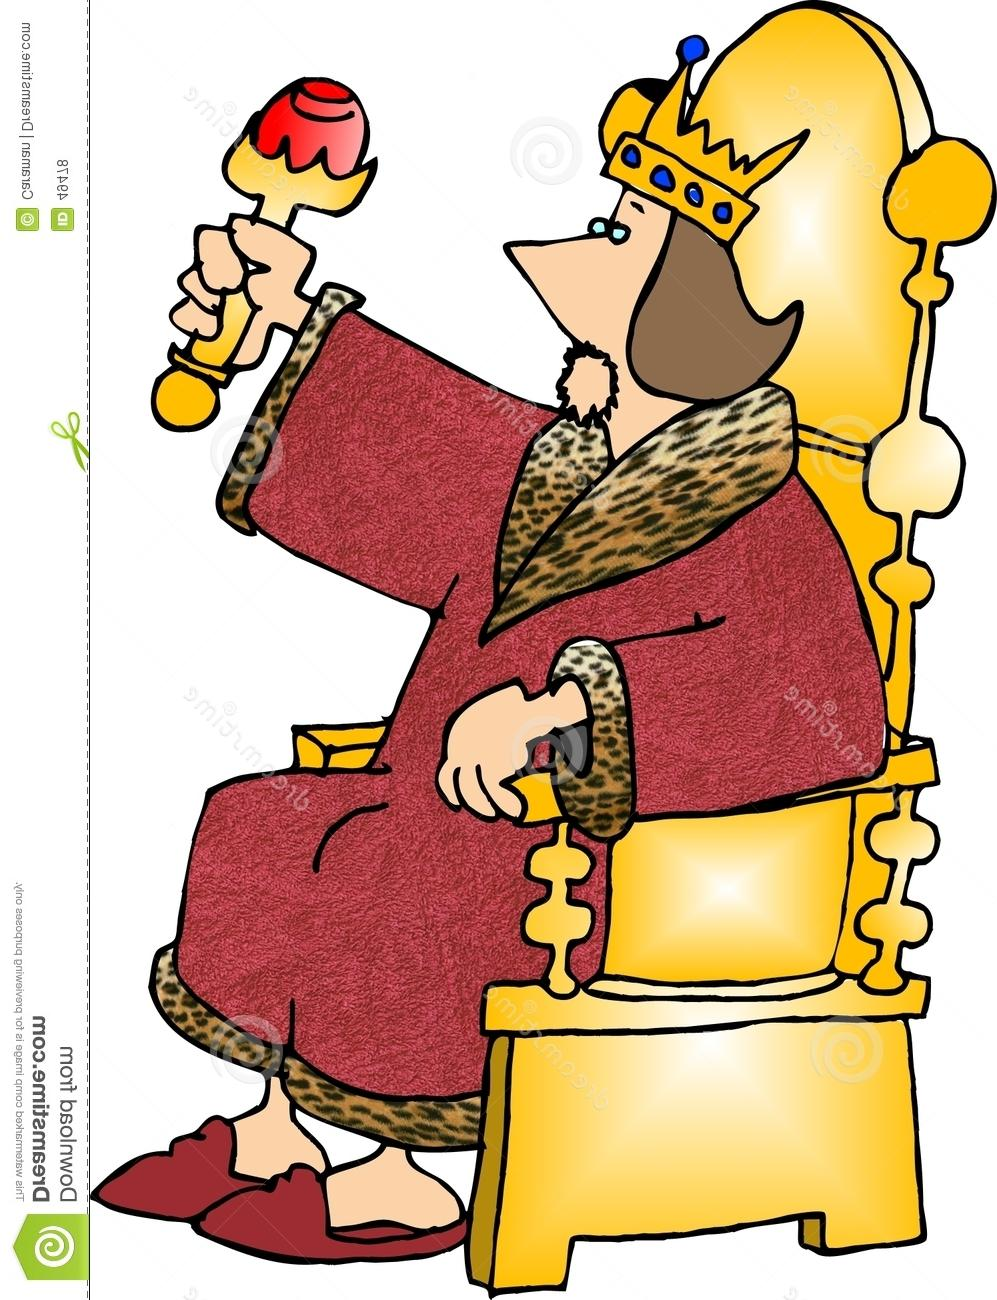 Cliparts download best clipartmag. Free cute king on a throne clipart